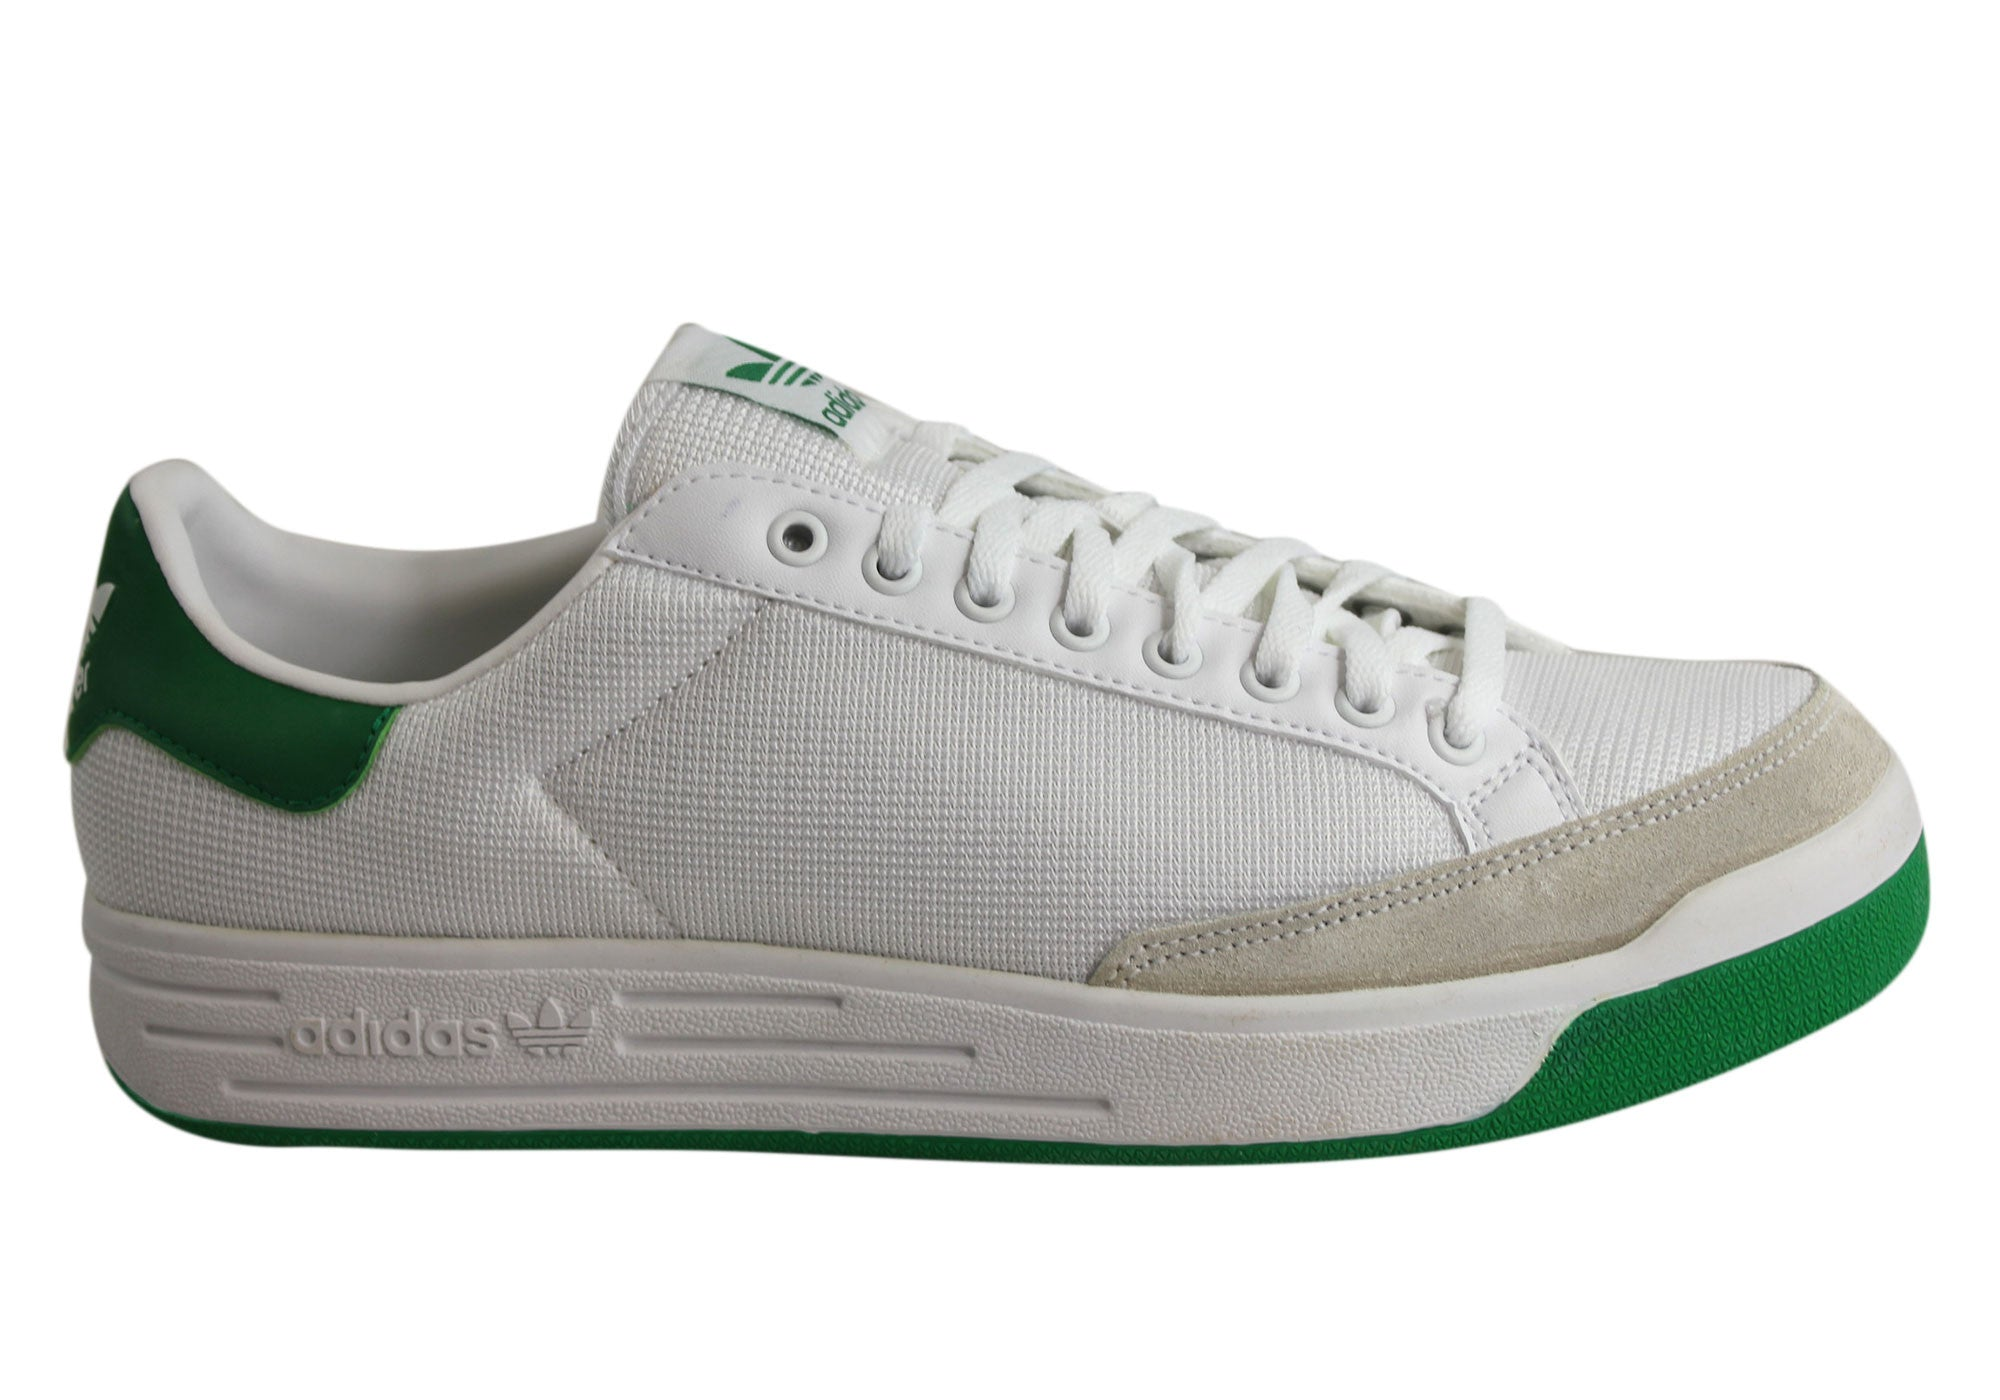 new adidas originals rod laver mens tennis shoes ebay